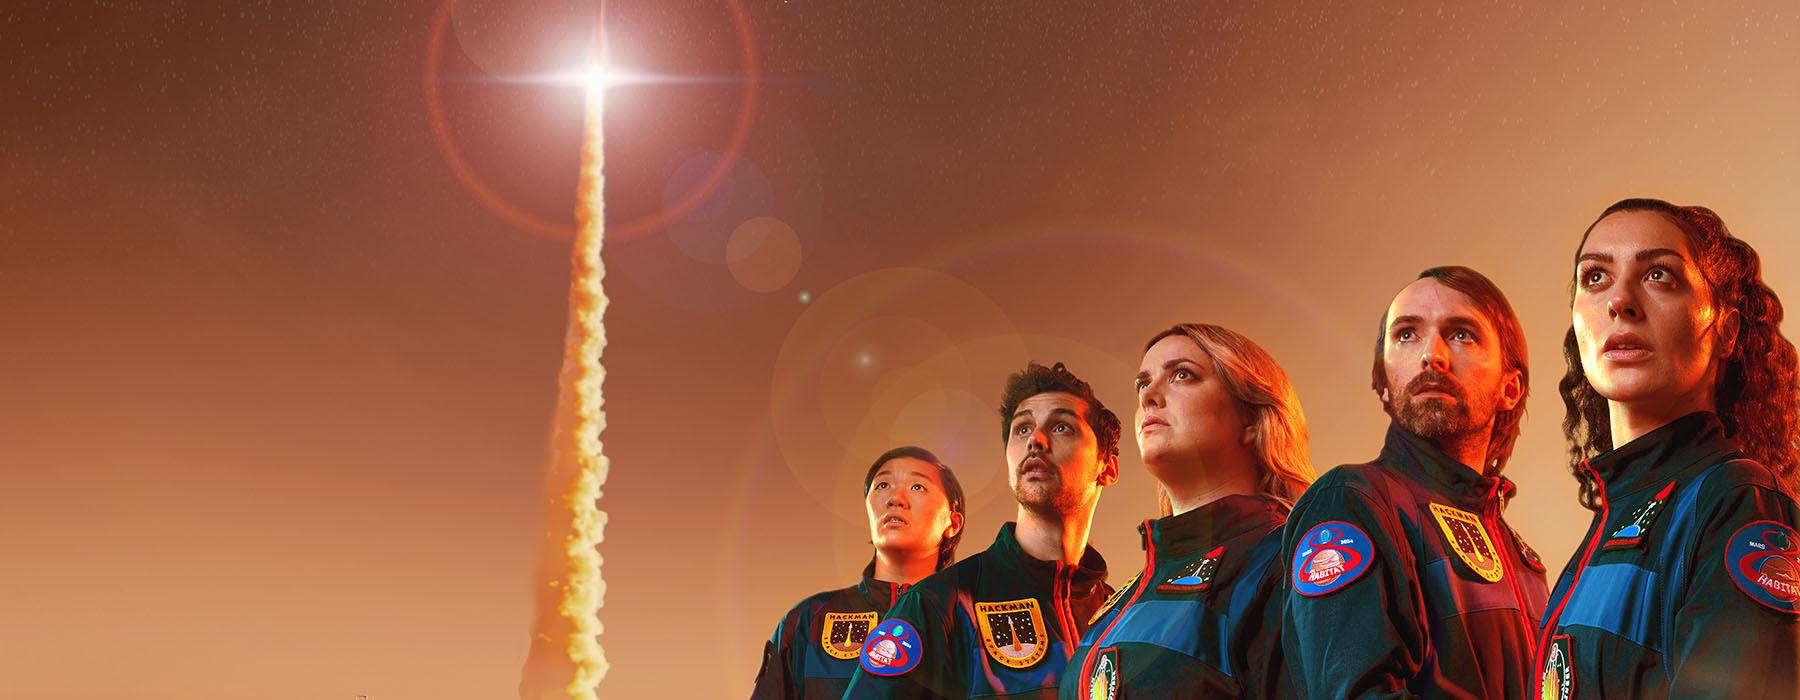 A group of astronauts look to the skies as a rocket takes off. The sky and ground are red, suggesting they are on Mars